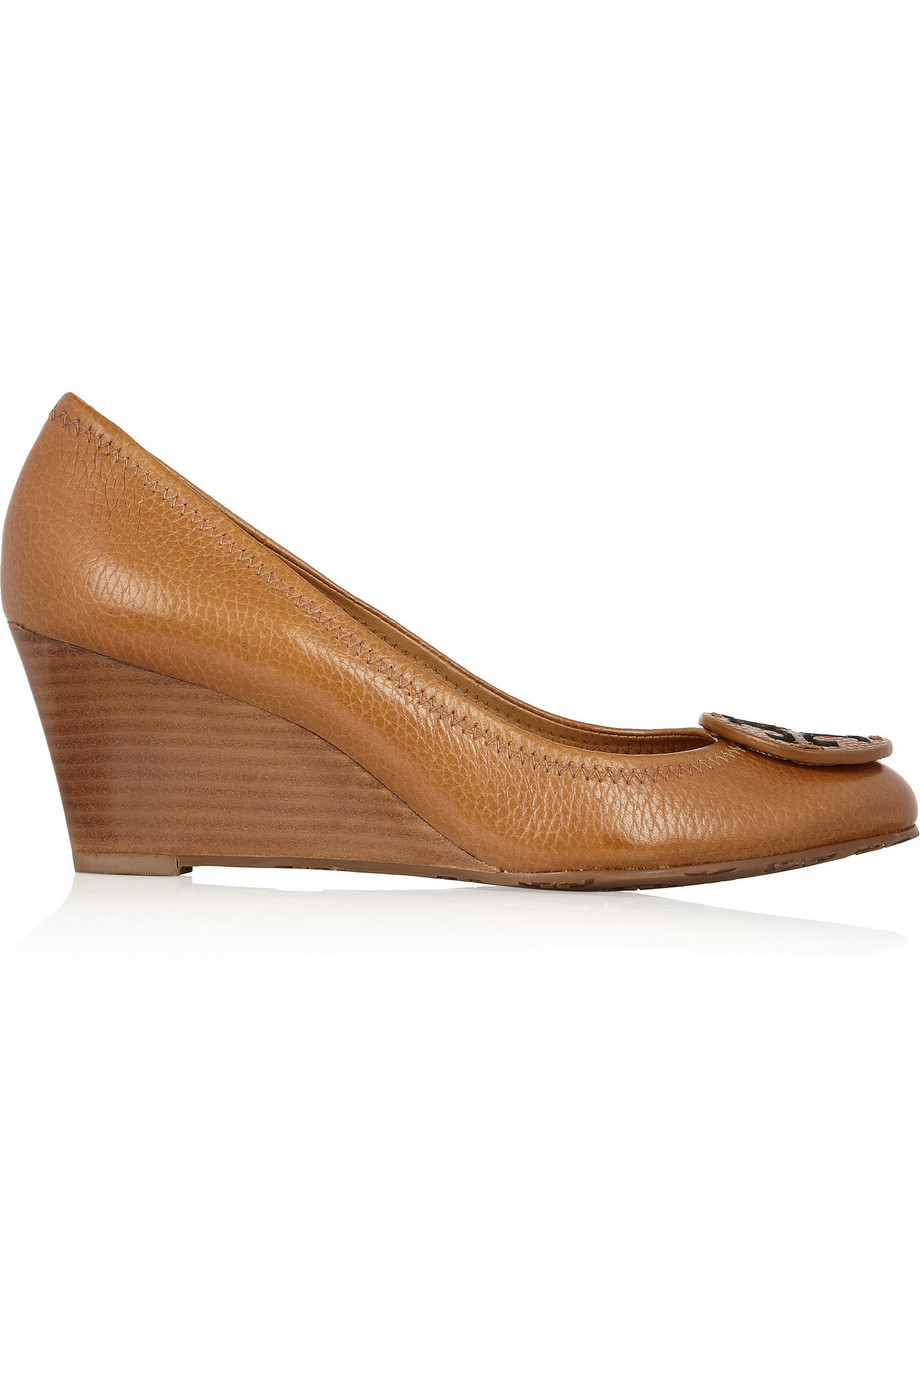 Tory Burch Sally Leather Wedge Pumps, Camel, Women's, Size: 11